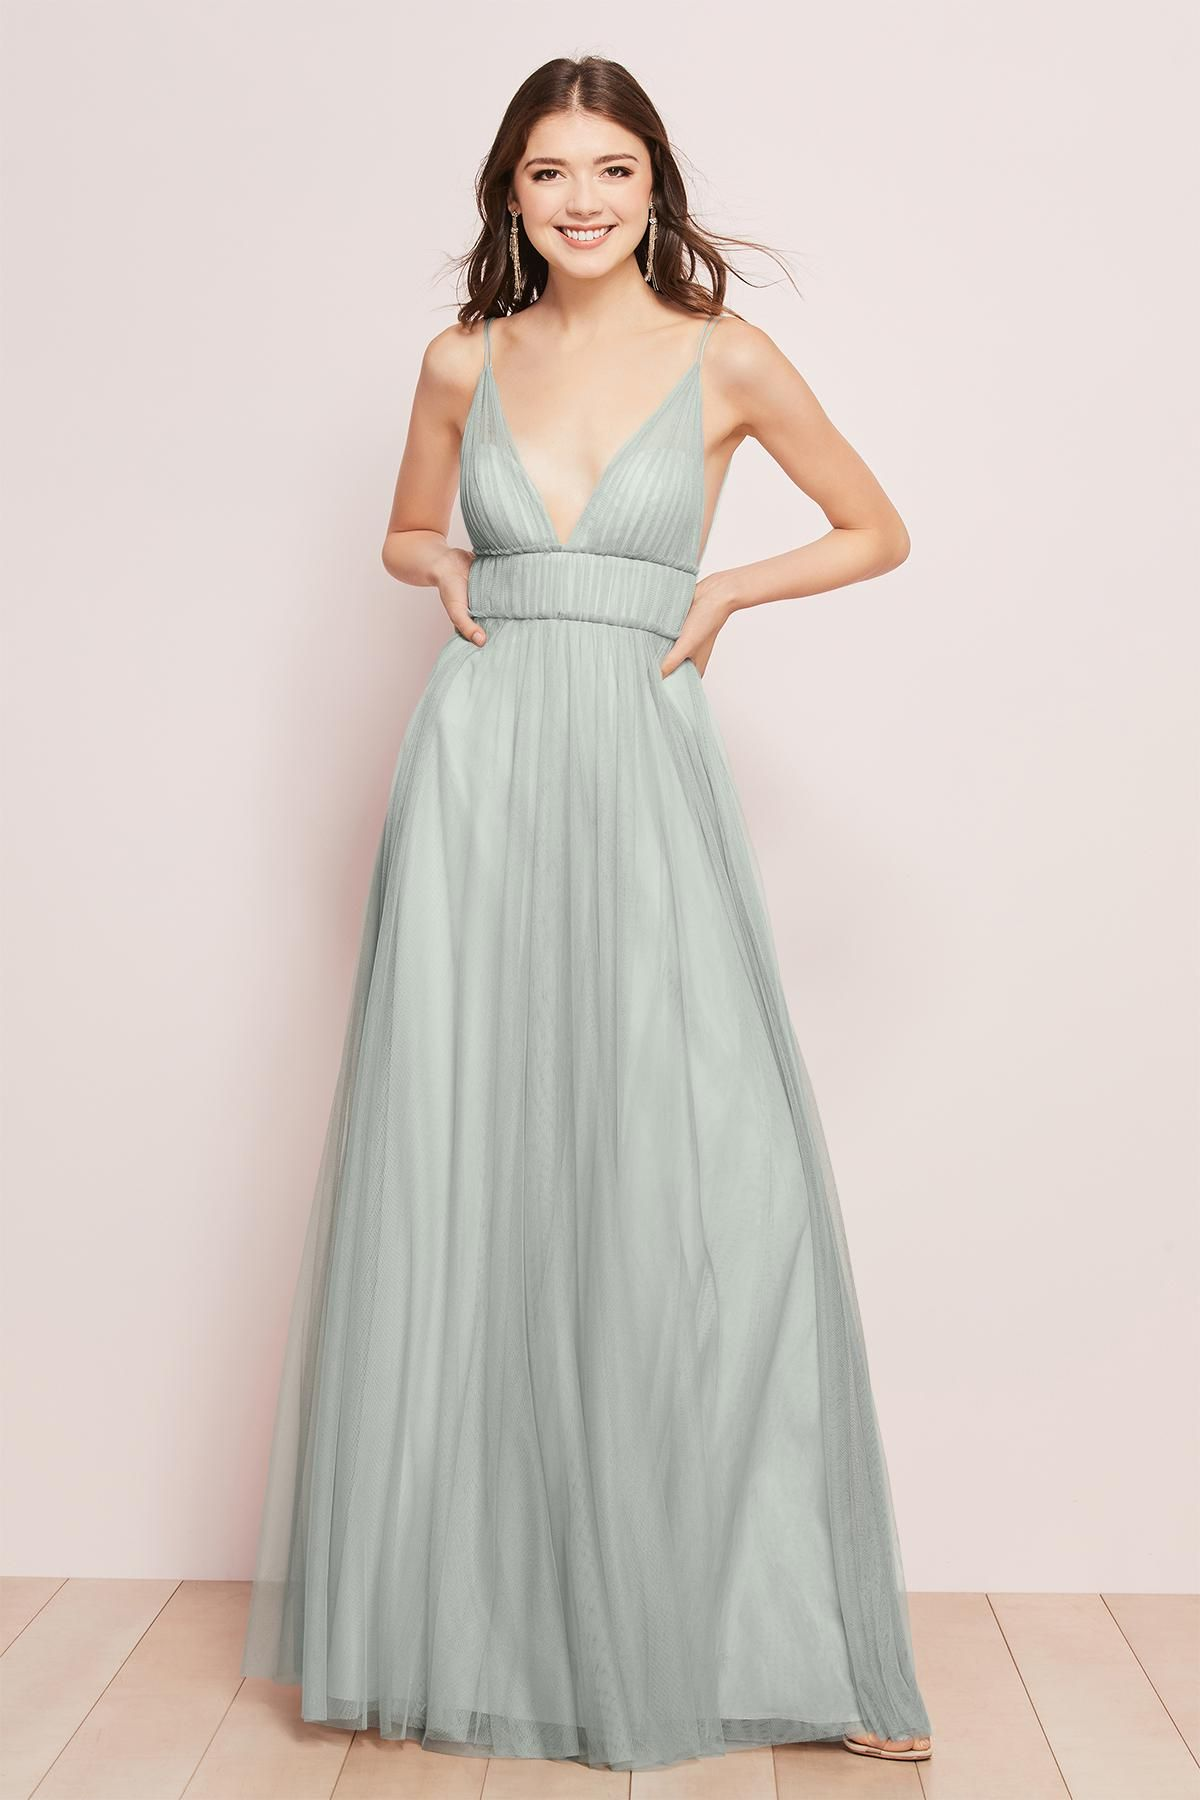 Callie In Sage Watters Bridesmaid Dresses Watters Bridesmaid French Blue Bridesmaid Dress